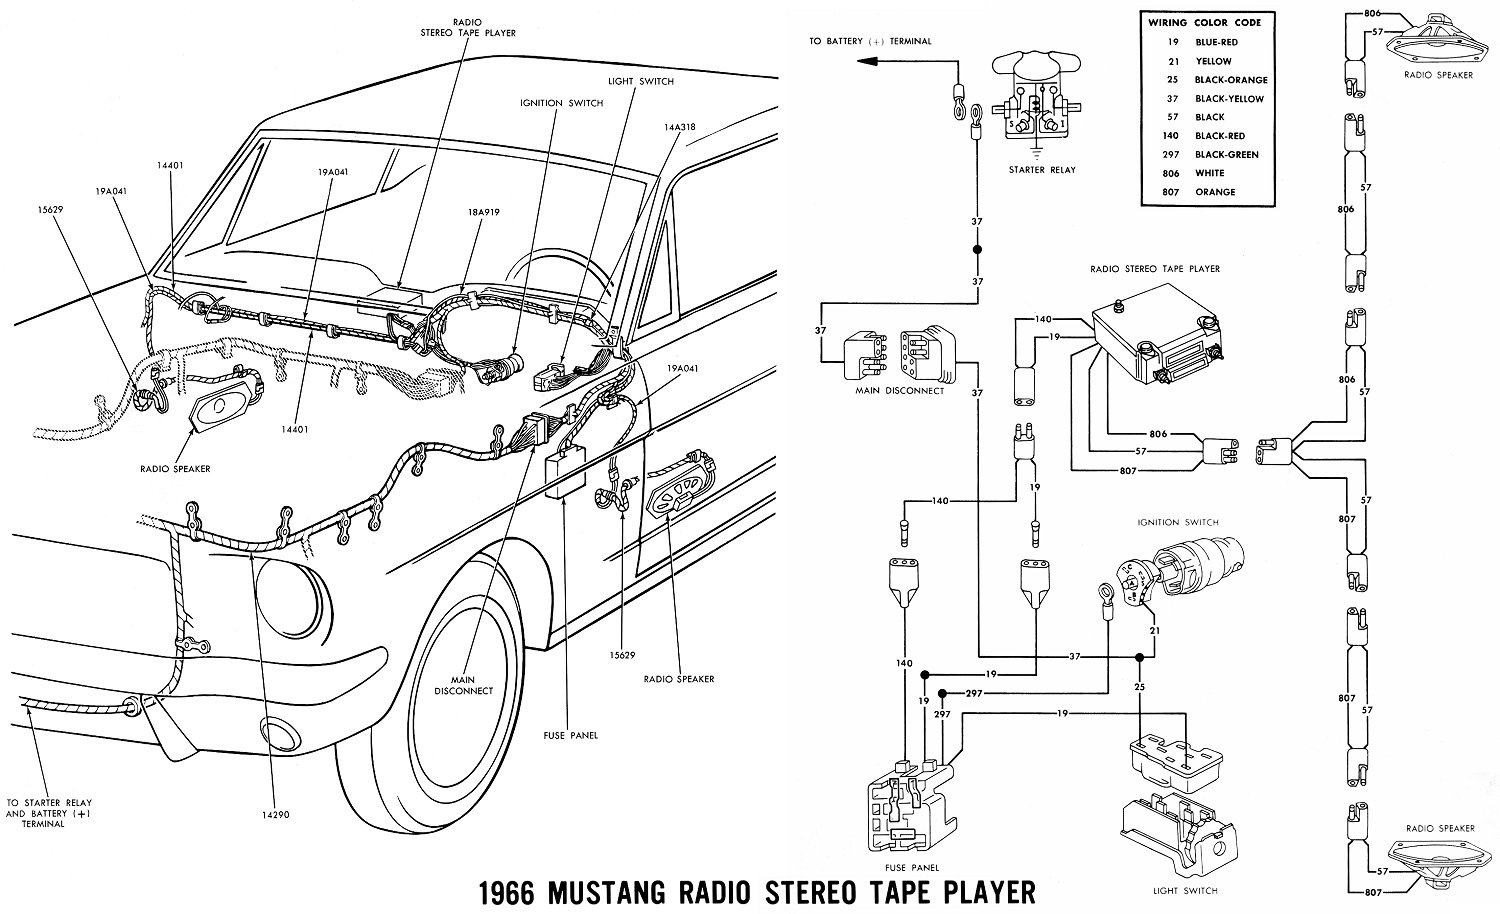 vintage mustang wiring diagrams rh midlife66 com 1969 ford mustang headlight wiring diagram 1969 ford mustang ignition switch wiring diagram